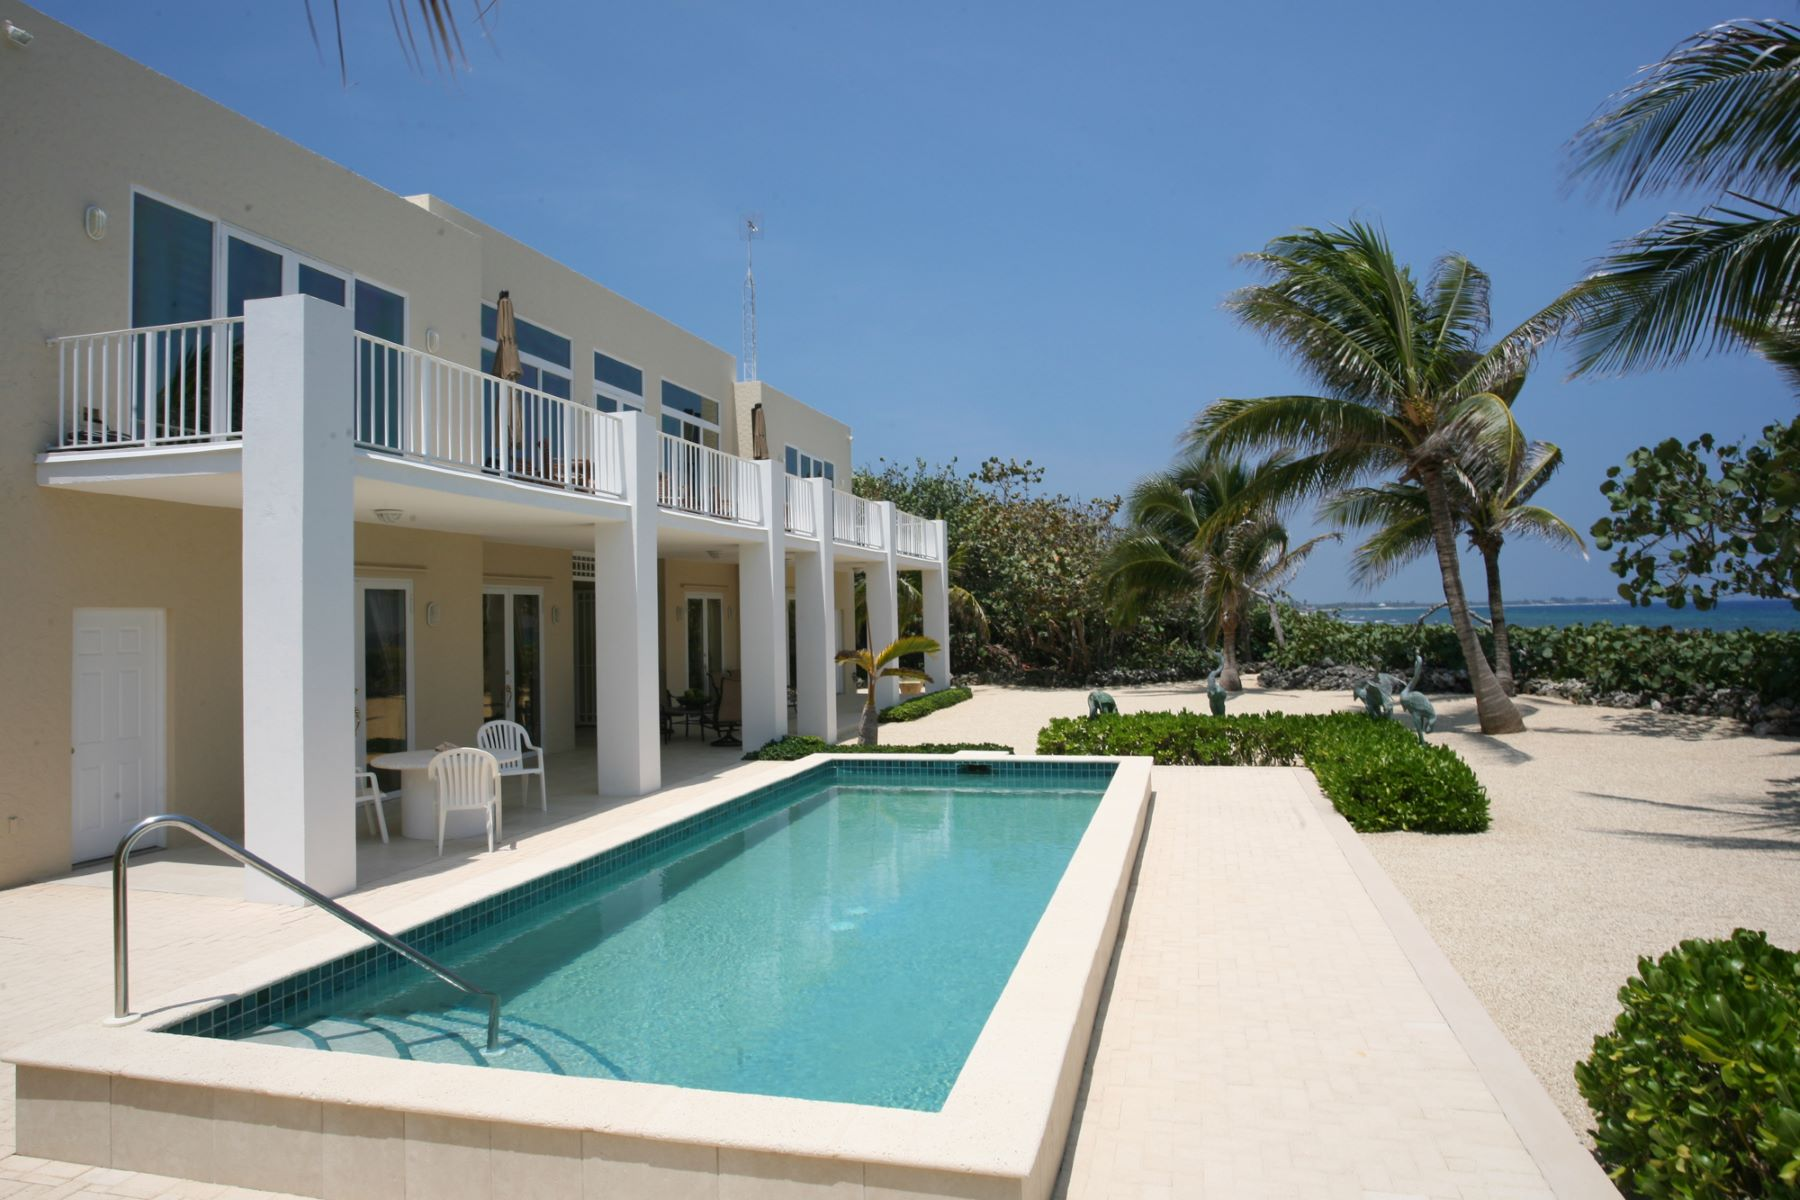 Additional photo for property listing at Villa Caymanas North Side, Gran Caimán Islas Caimán